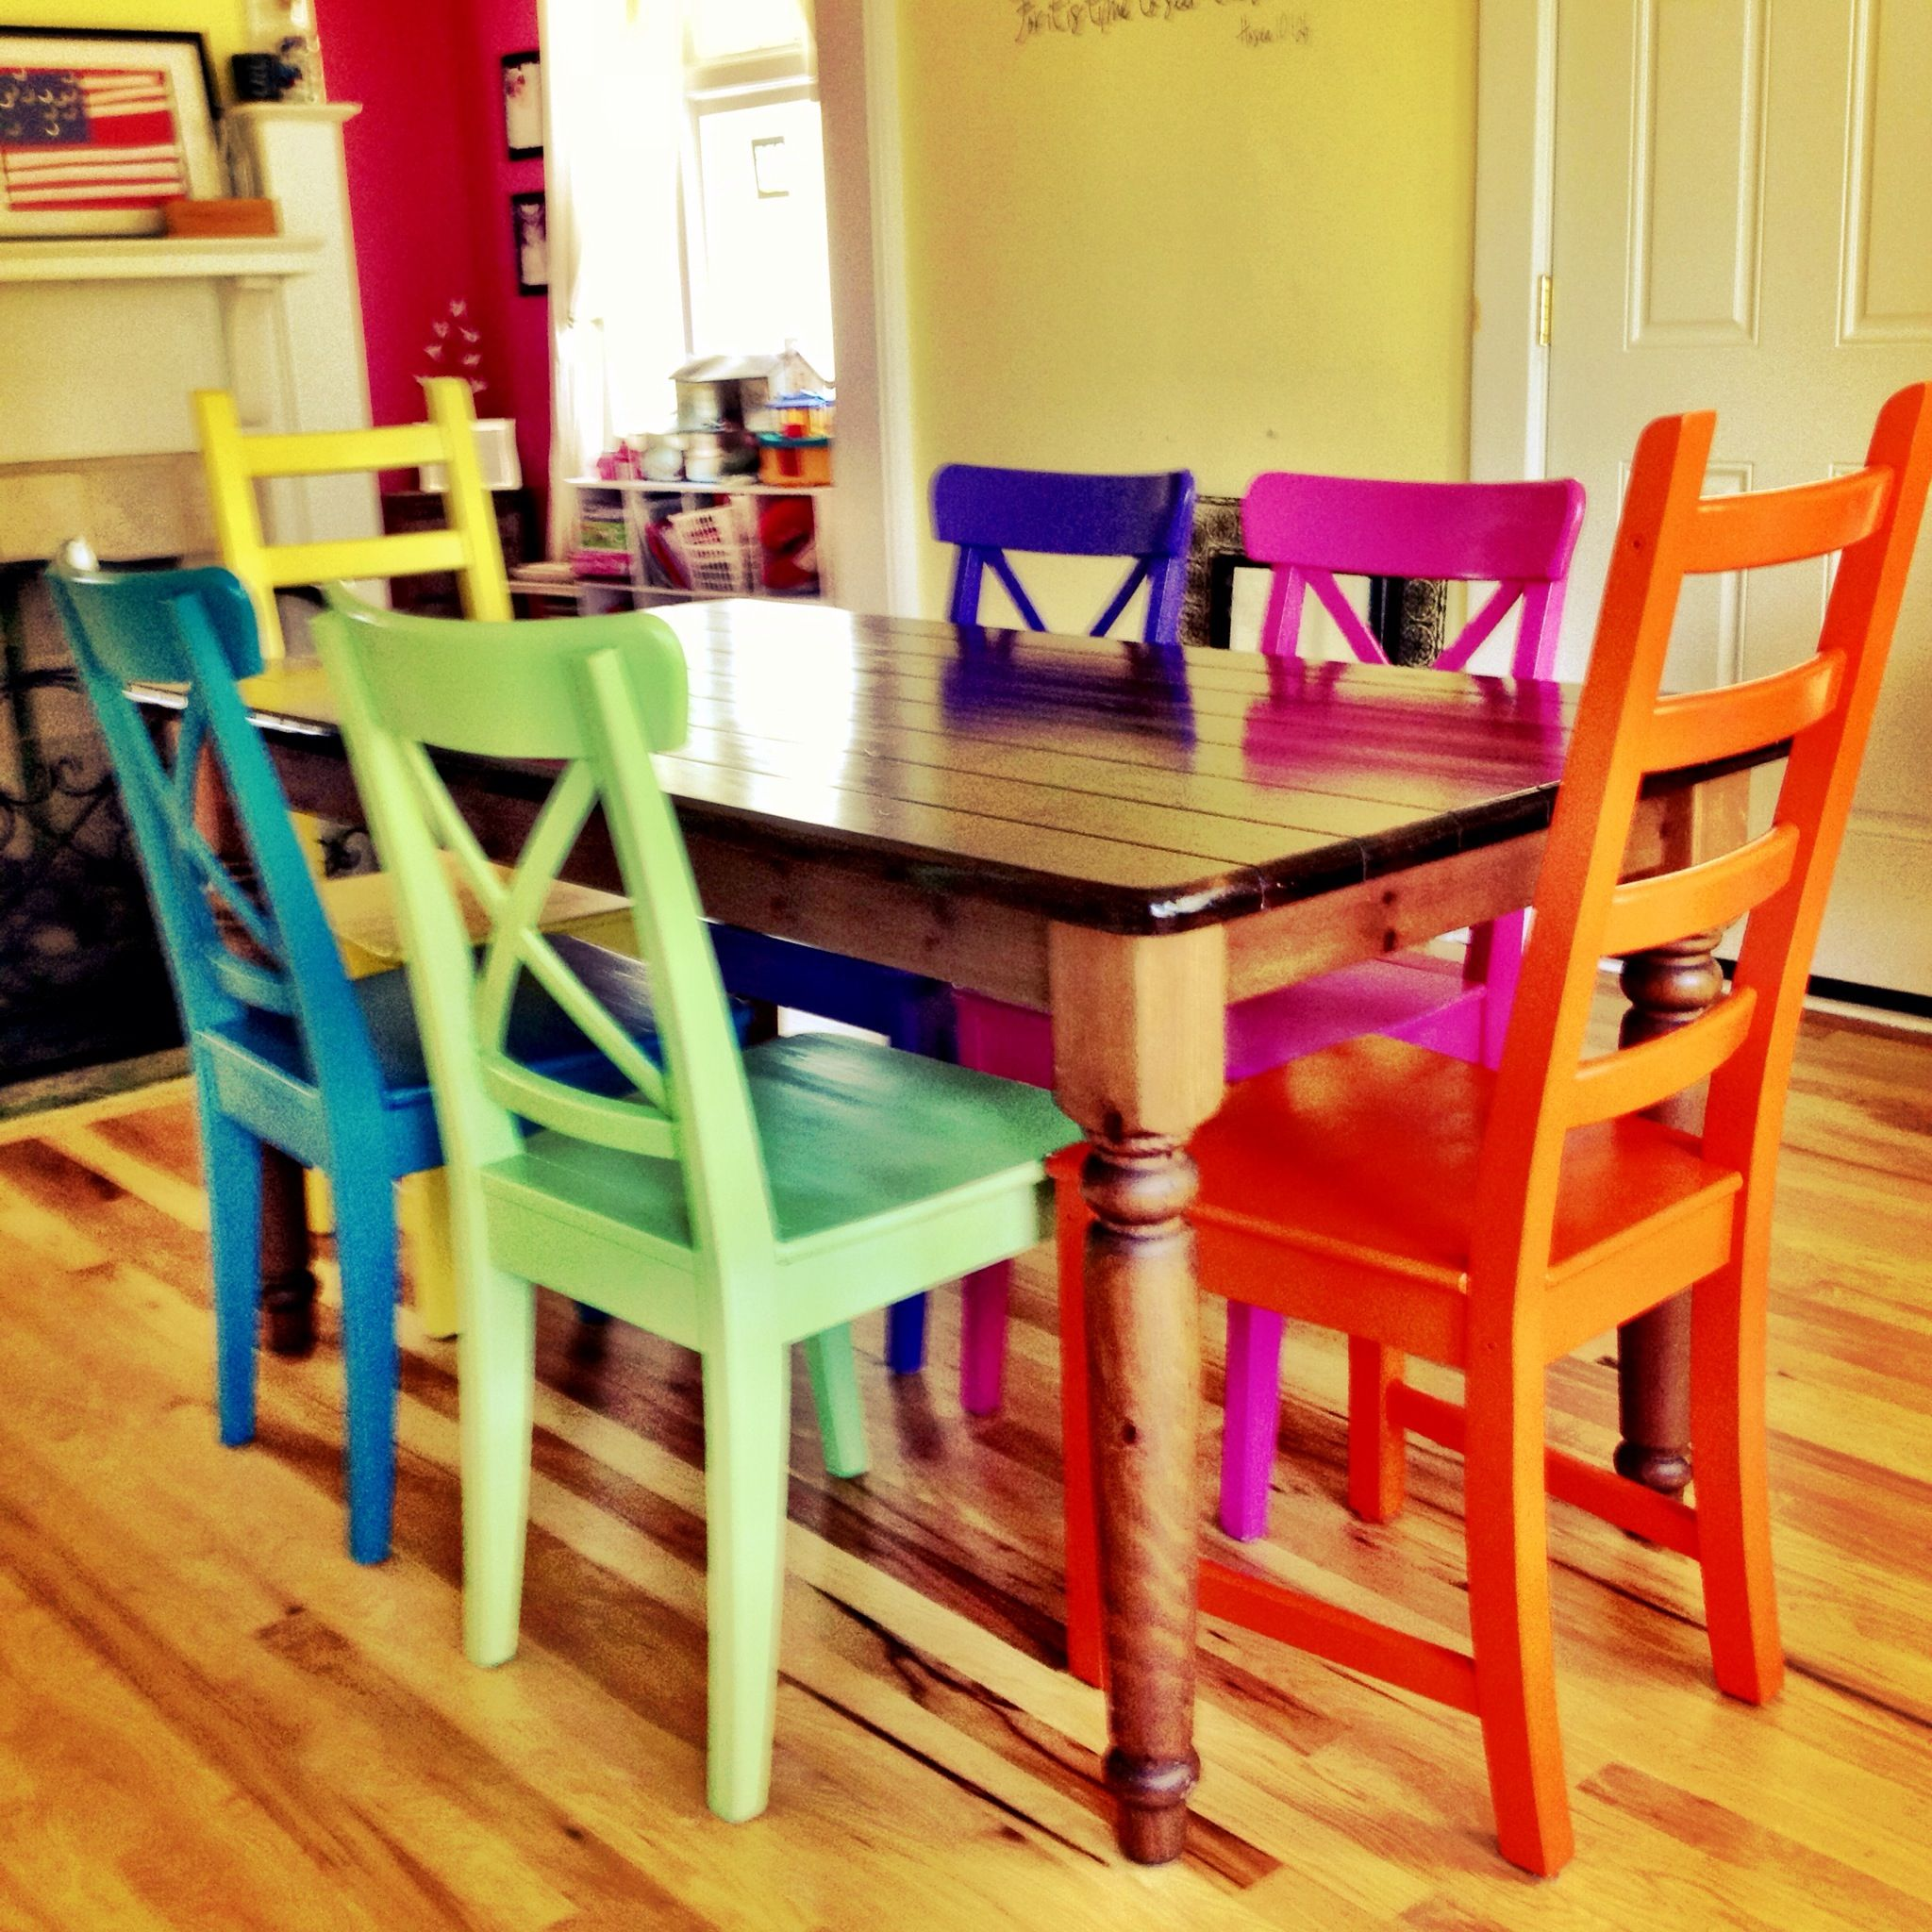 Rustoleum Spray Painted Chairs Eclectic Dining Room Eclectic